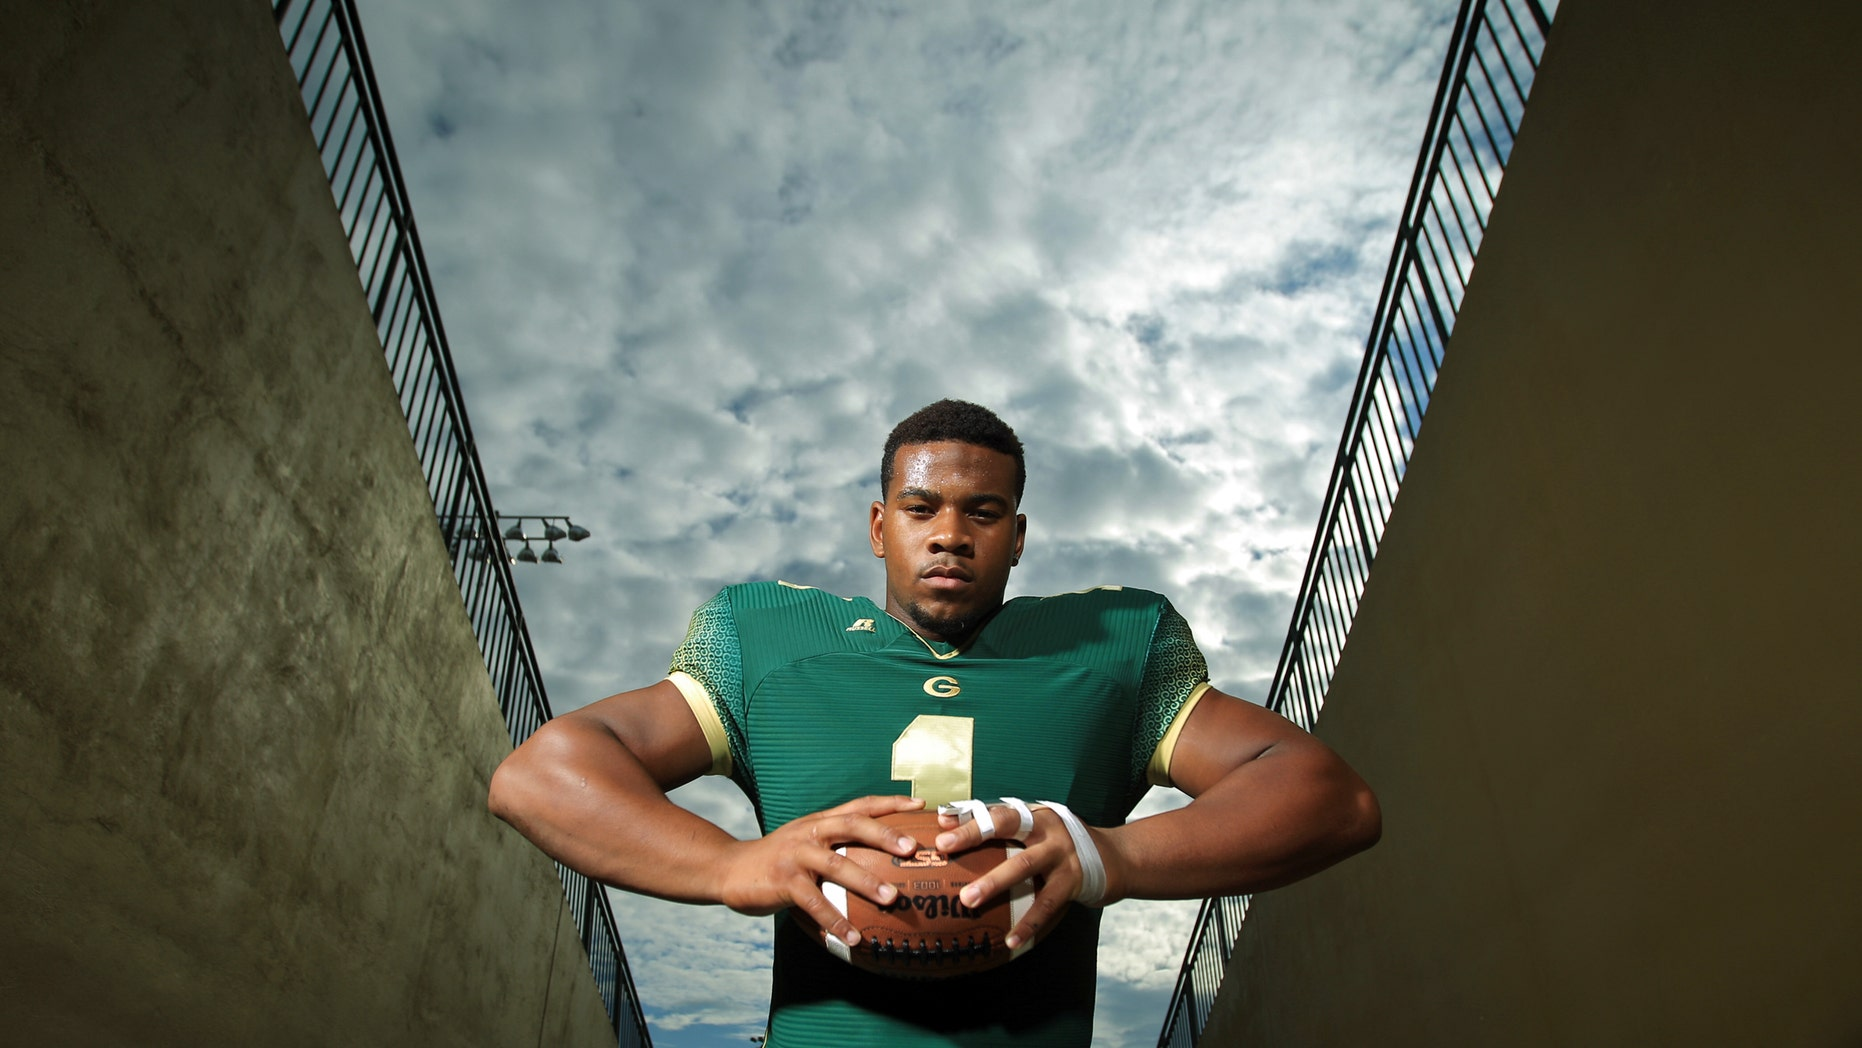 In this photo taken Aug. 6, 2012, Grayson defensive lineman Robert Nkemdiche poses for a portrait in Loganville, Ga.  Nkemdiche is the consensus No. 1 high school recruit in the nation and is being compared to such former greats as Reggie White and current stars as Jadeveon Clowney. (AP Photo/Atlanta-Journal, Constitution, Jason Getz) MARIETTA DAILY OUT; GWINNETT DAILY POST OUT; LOCAL TV OUT; WXIA-TV OUT; WGCL-TV OUT